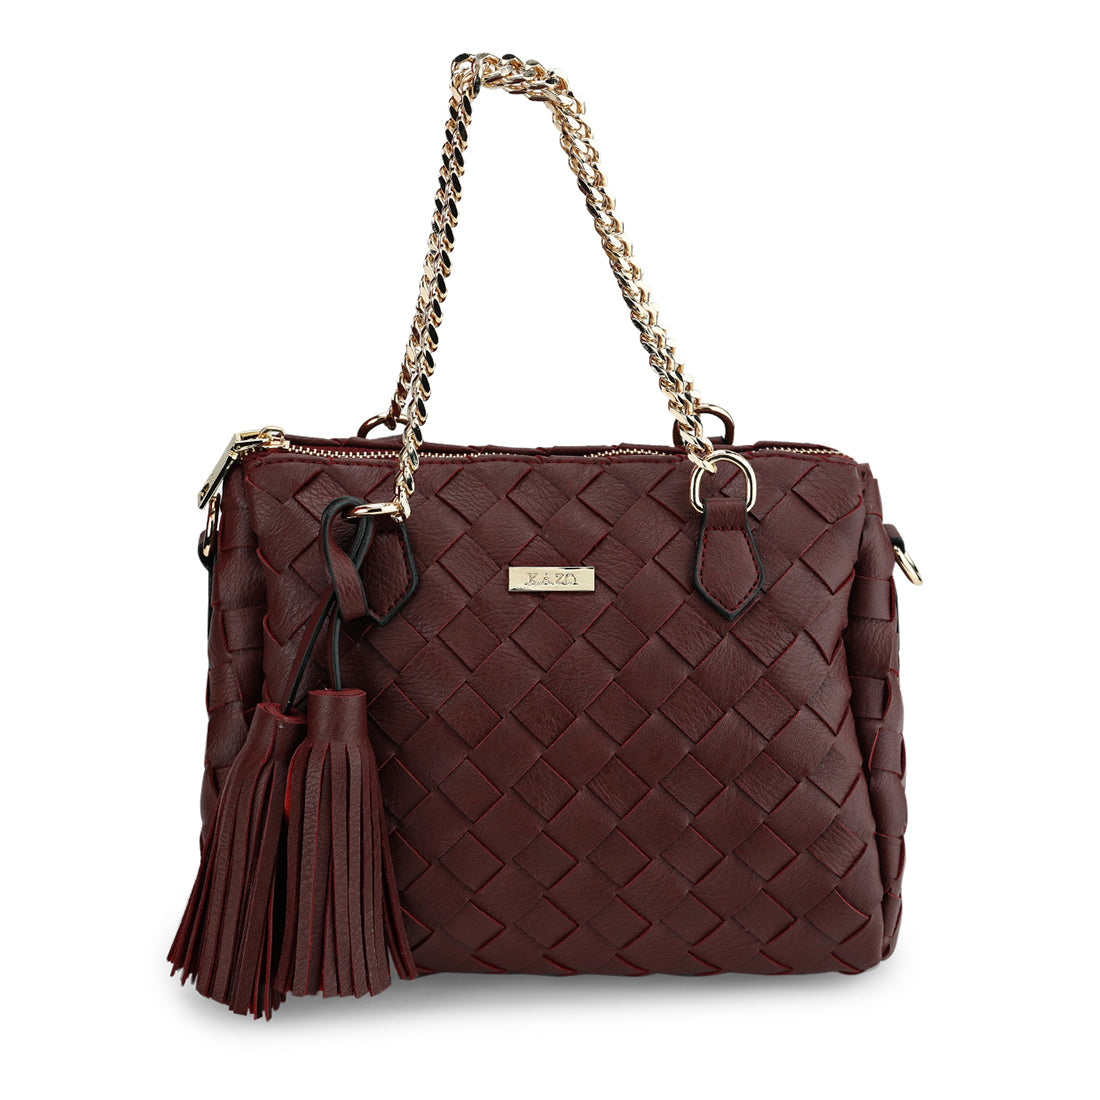 Weaved Design Handbag